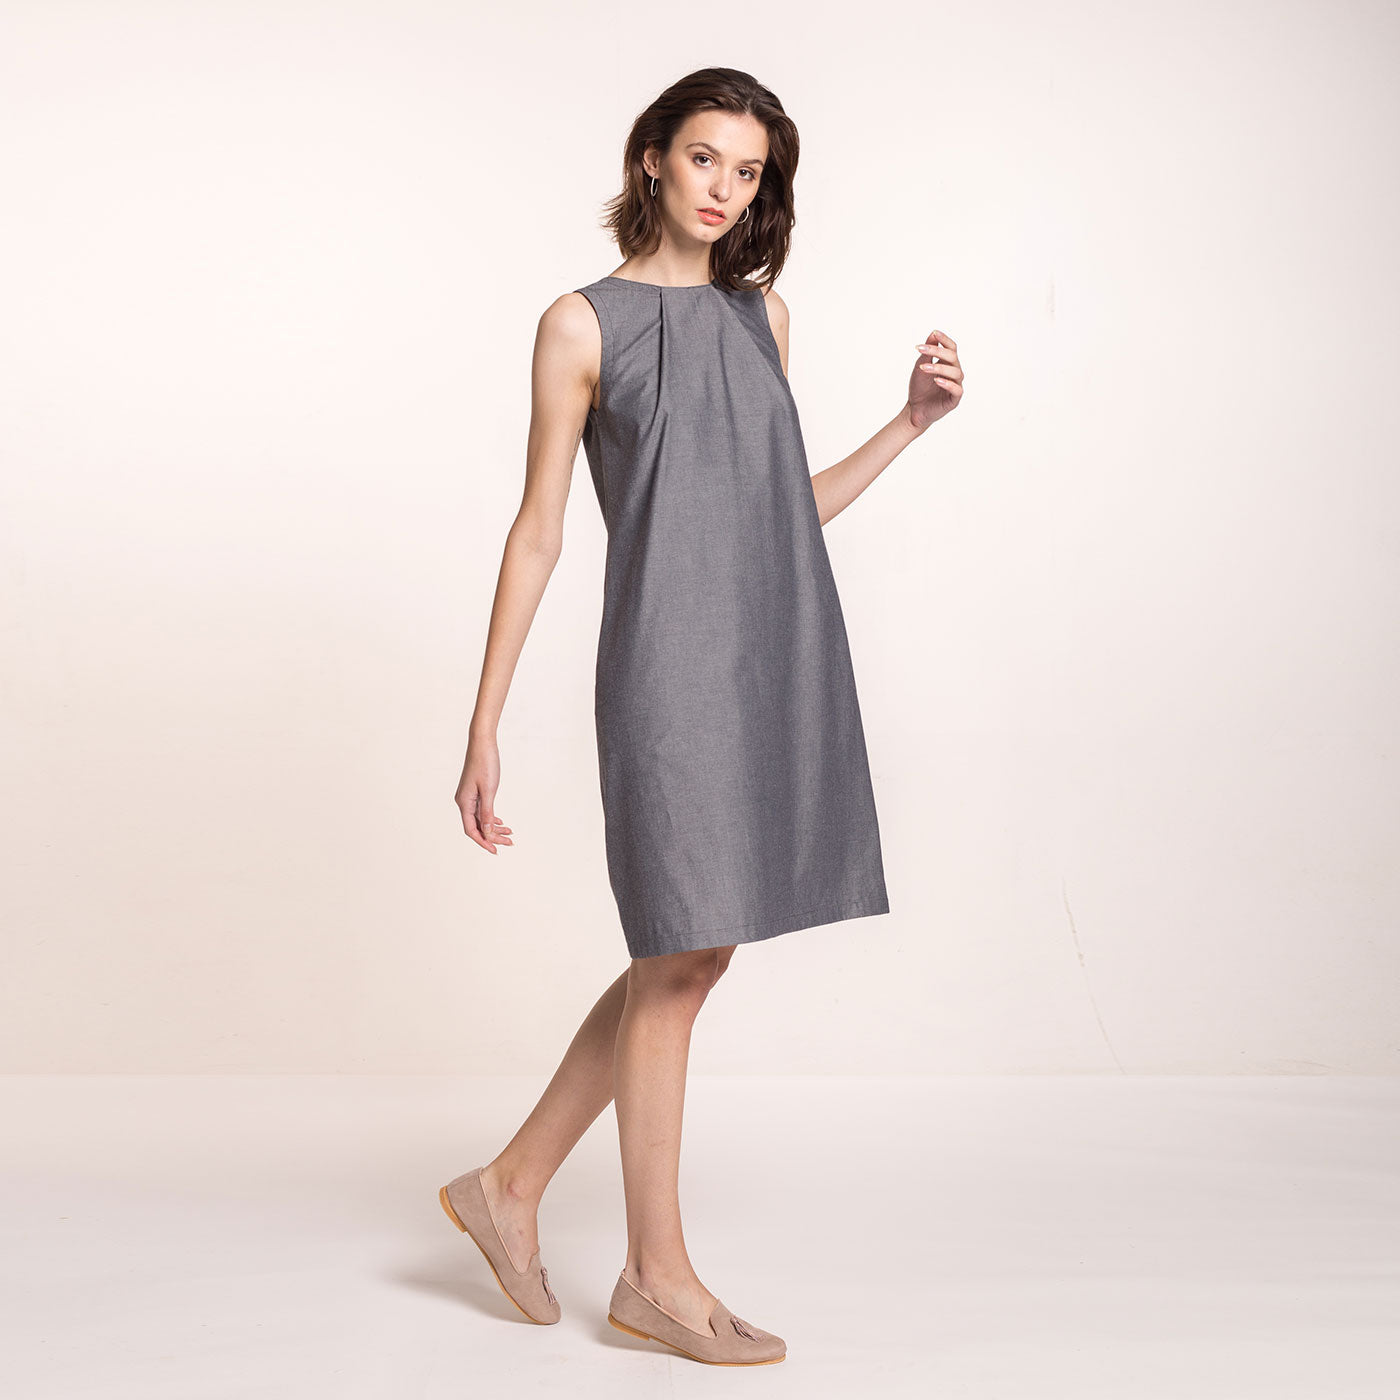 The model wears a grey, sustainable,  organic cotton, A-line shape dress, with pleats on the round neckline and pockets, frontal view.